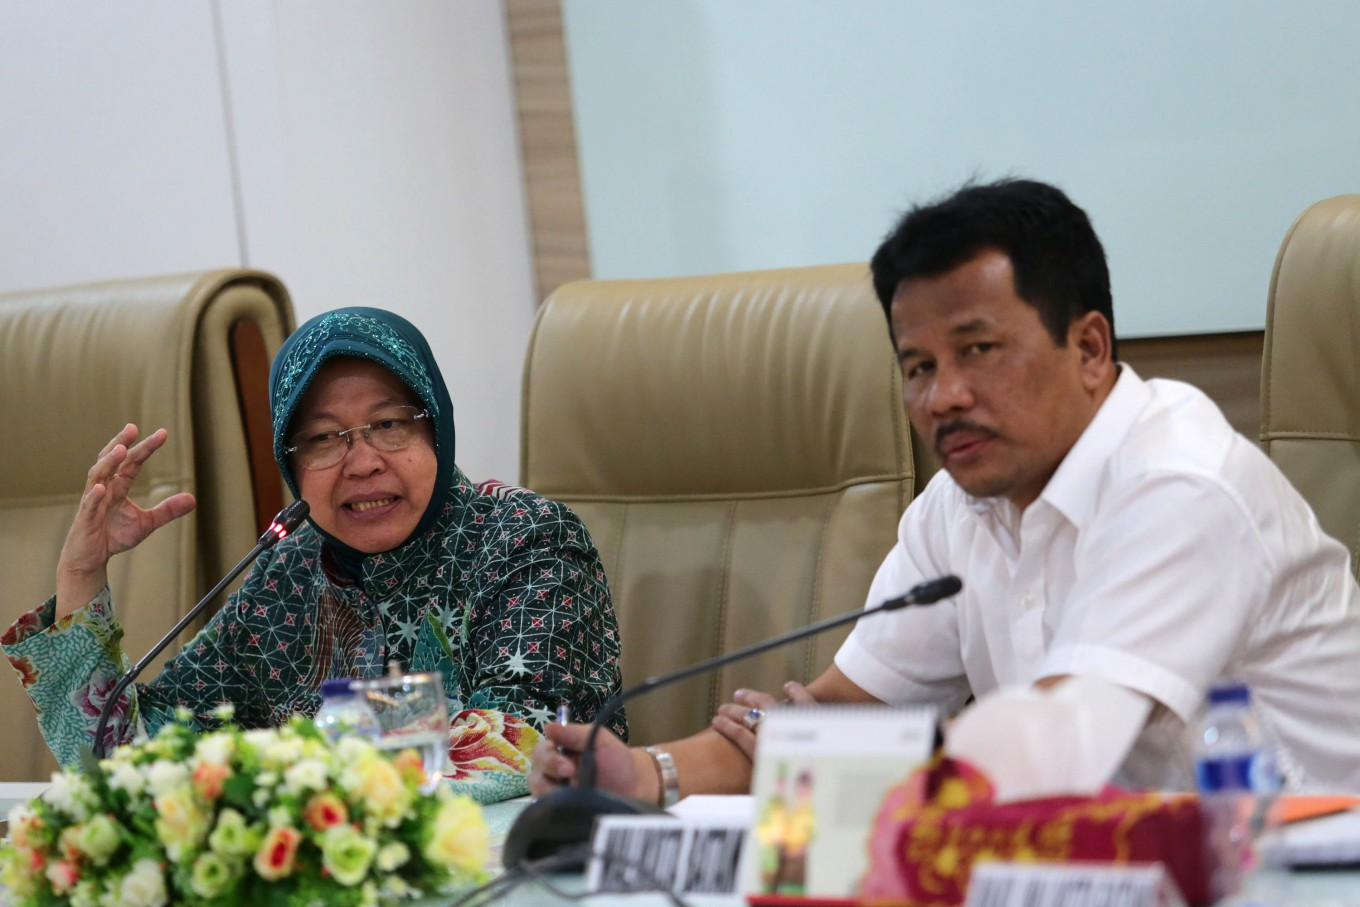 Govt. to allocate Rp 2.7t for Surabaya electric tram